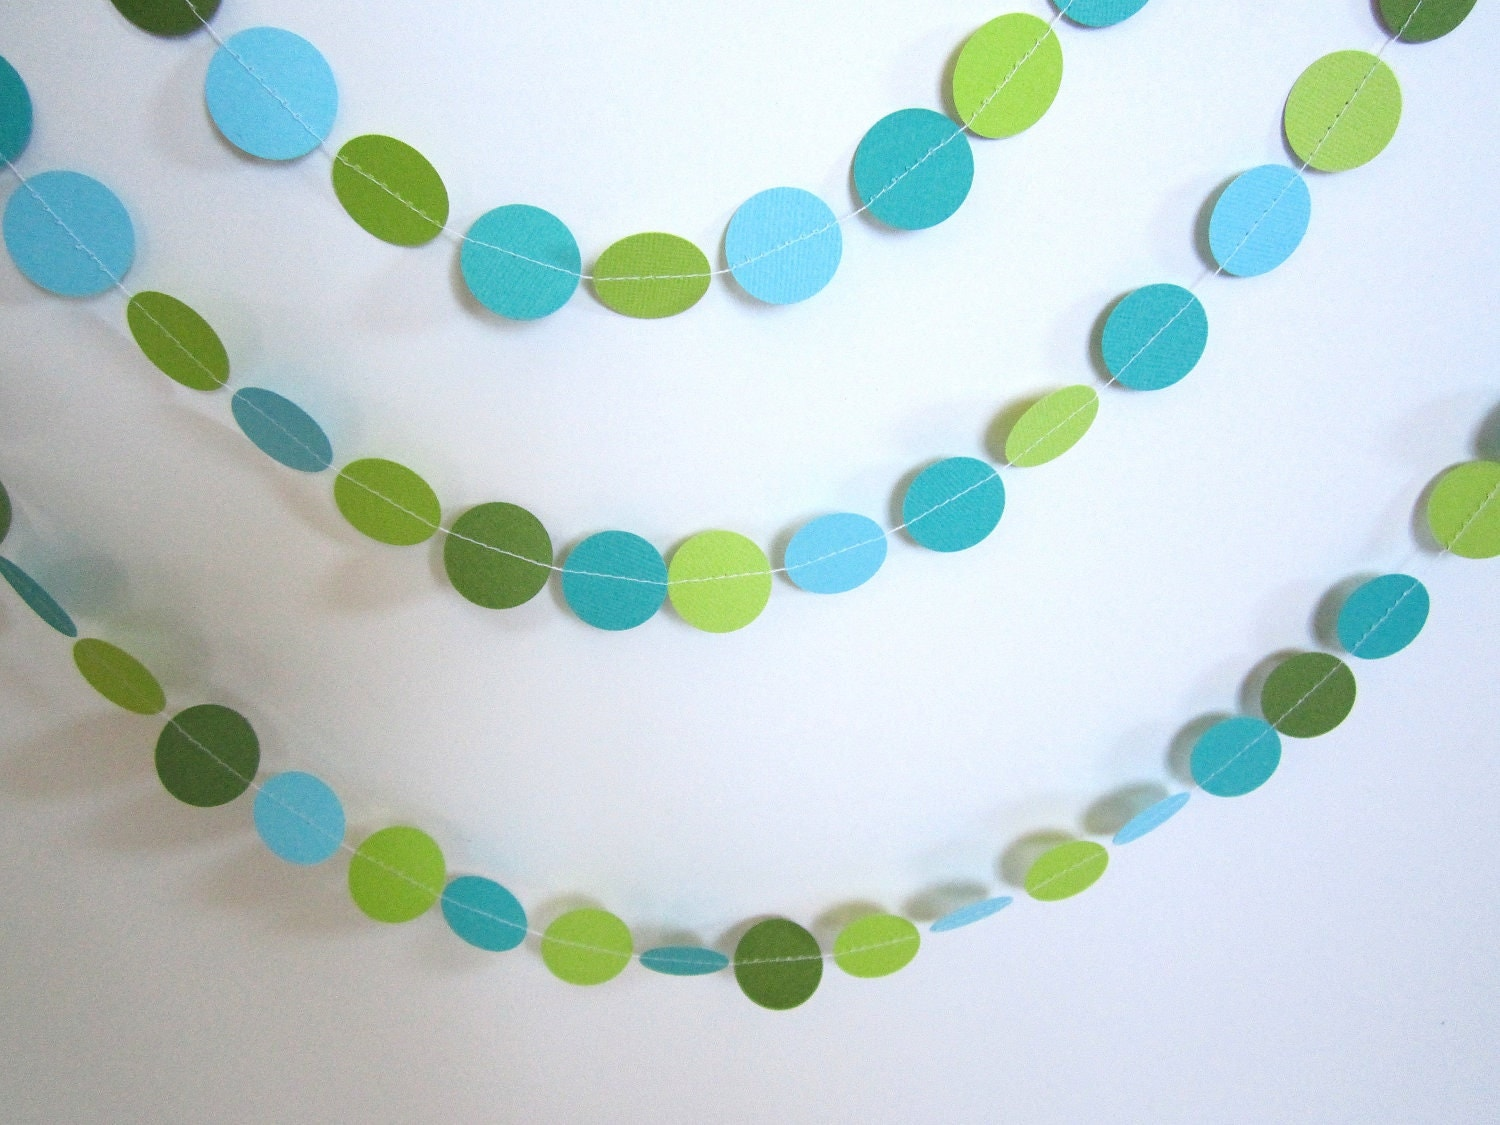 Christmas Decor, Garland, Christmas Tree Garland, Green, Blue, Turquoise - Ferrever